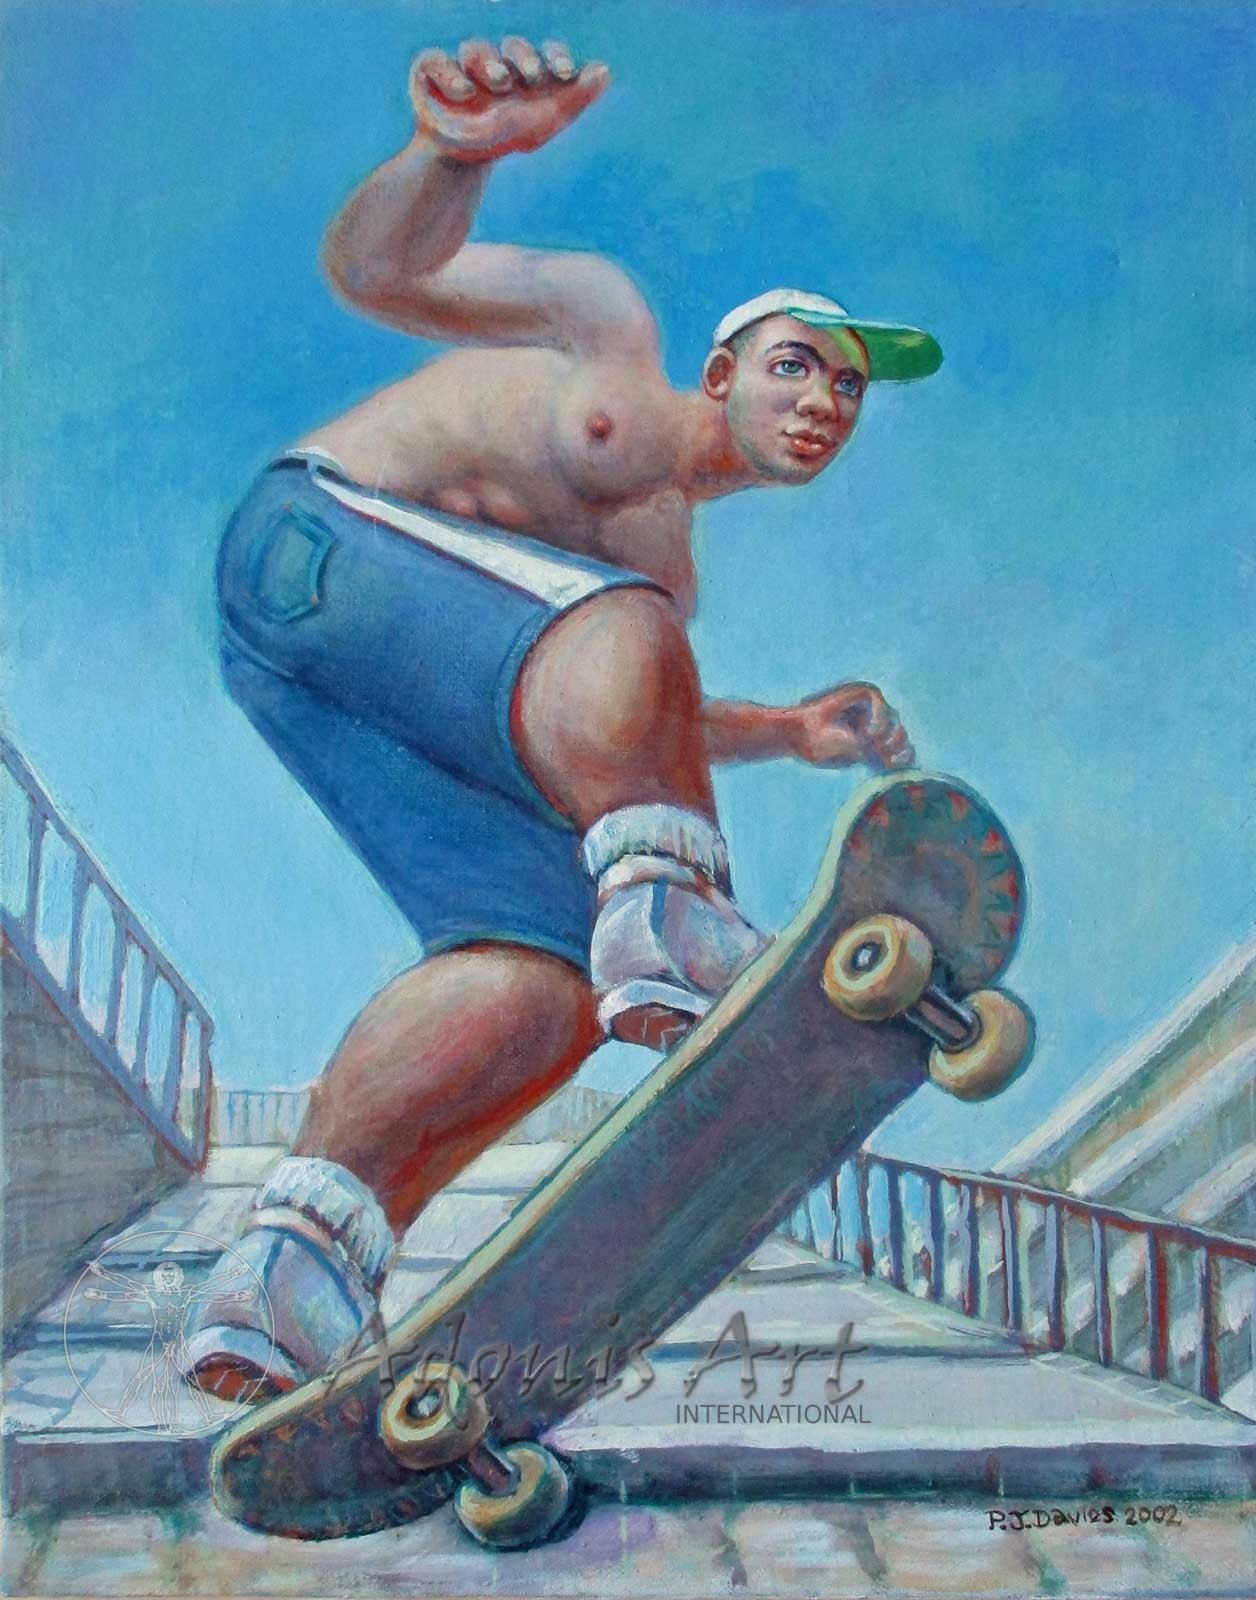 'Skateboarder' by Peter John Davies